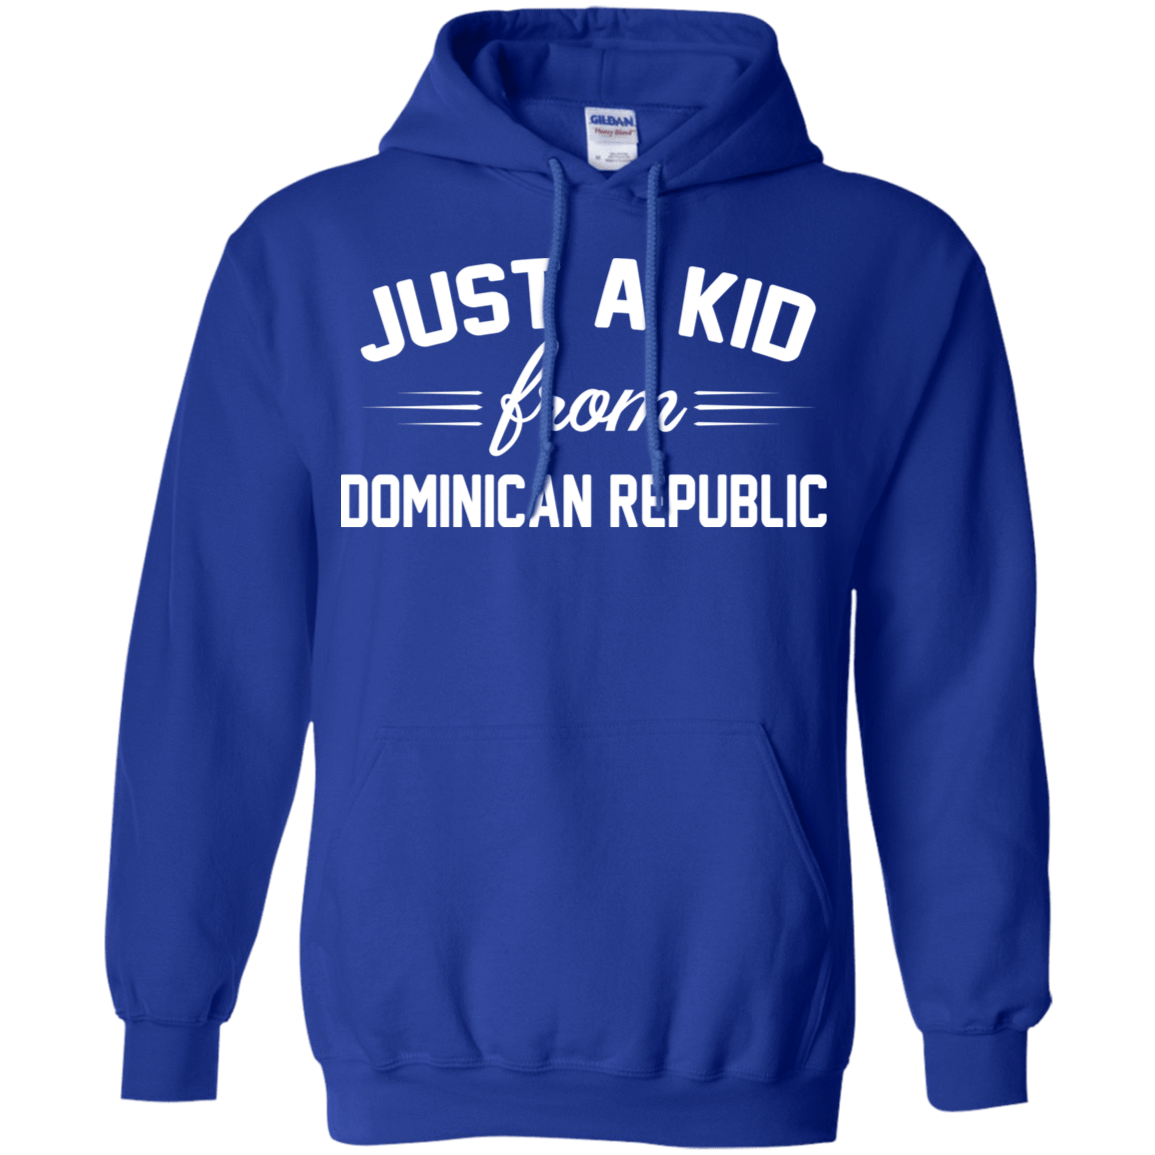 Just a Kid Store | Dominican Republic T-Shirts, Hoodie, Tank 541-4765-72092750-23175 - Tee Ript